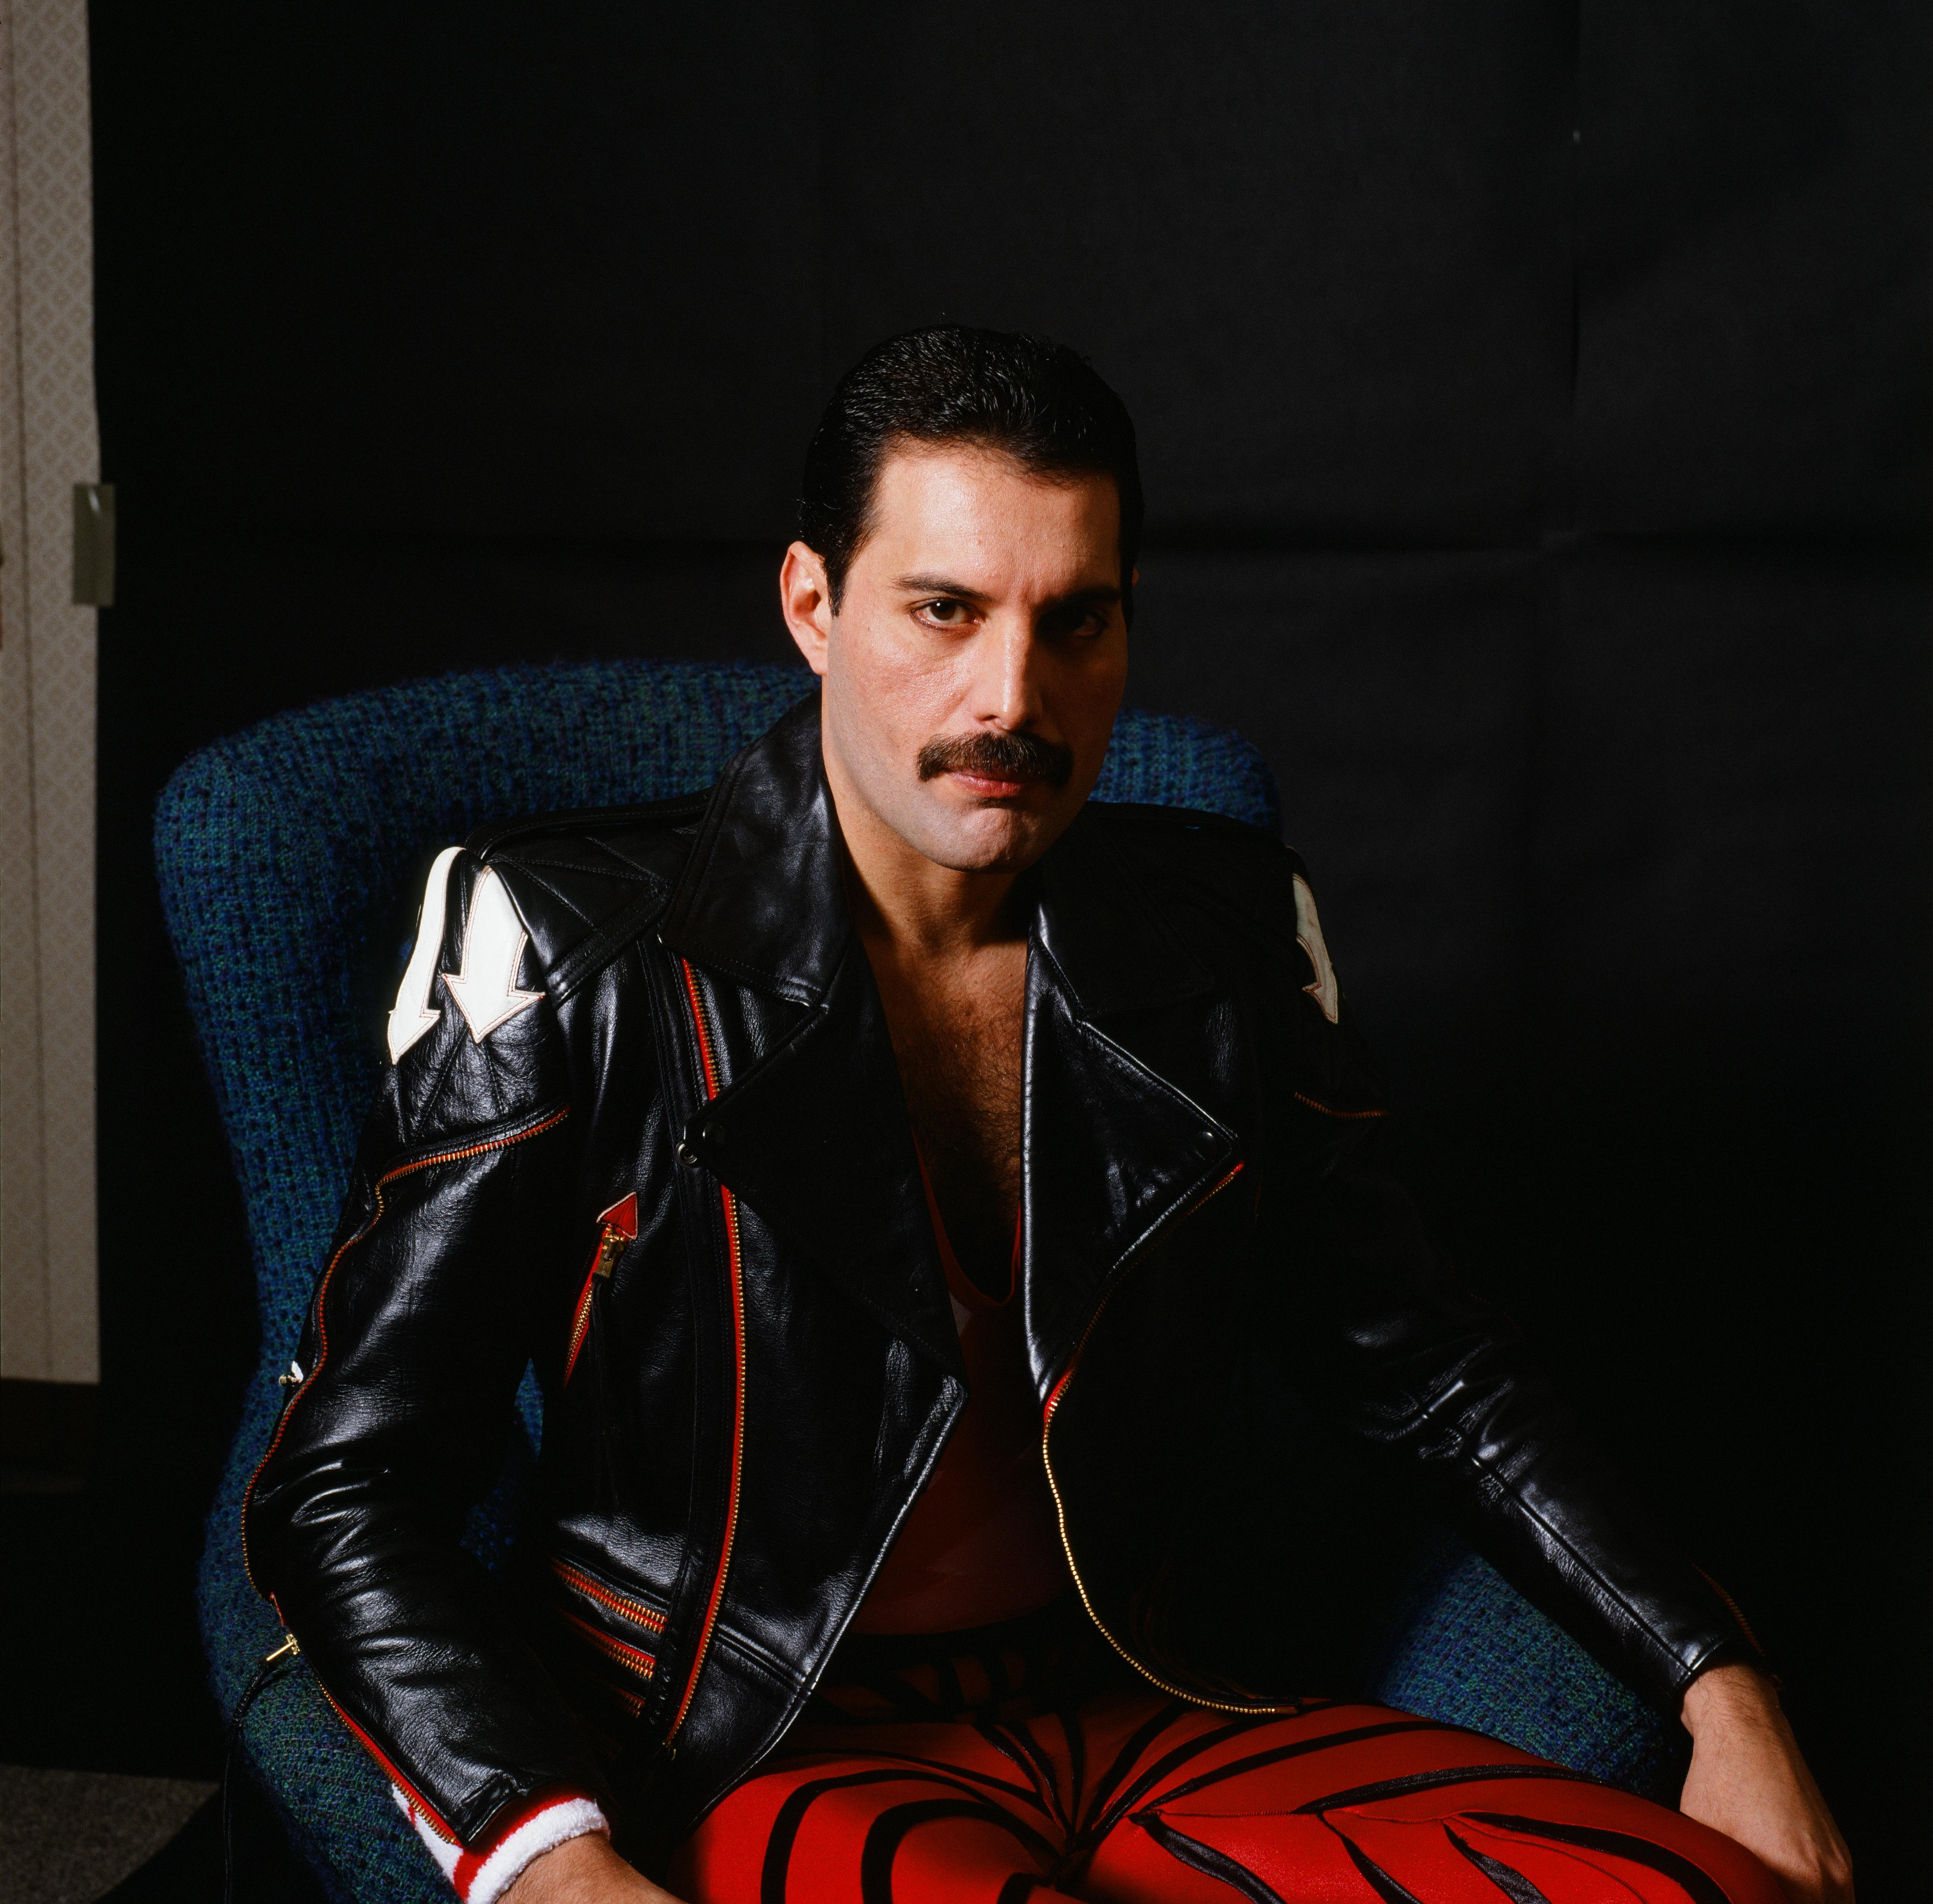 Freddie Mercury's Photoshoot For MUSIC LIFE Magazine. | Source: Getty Images